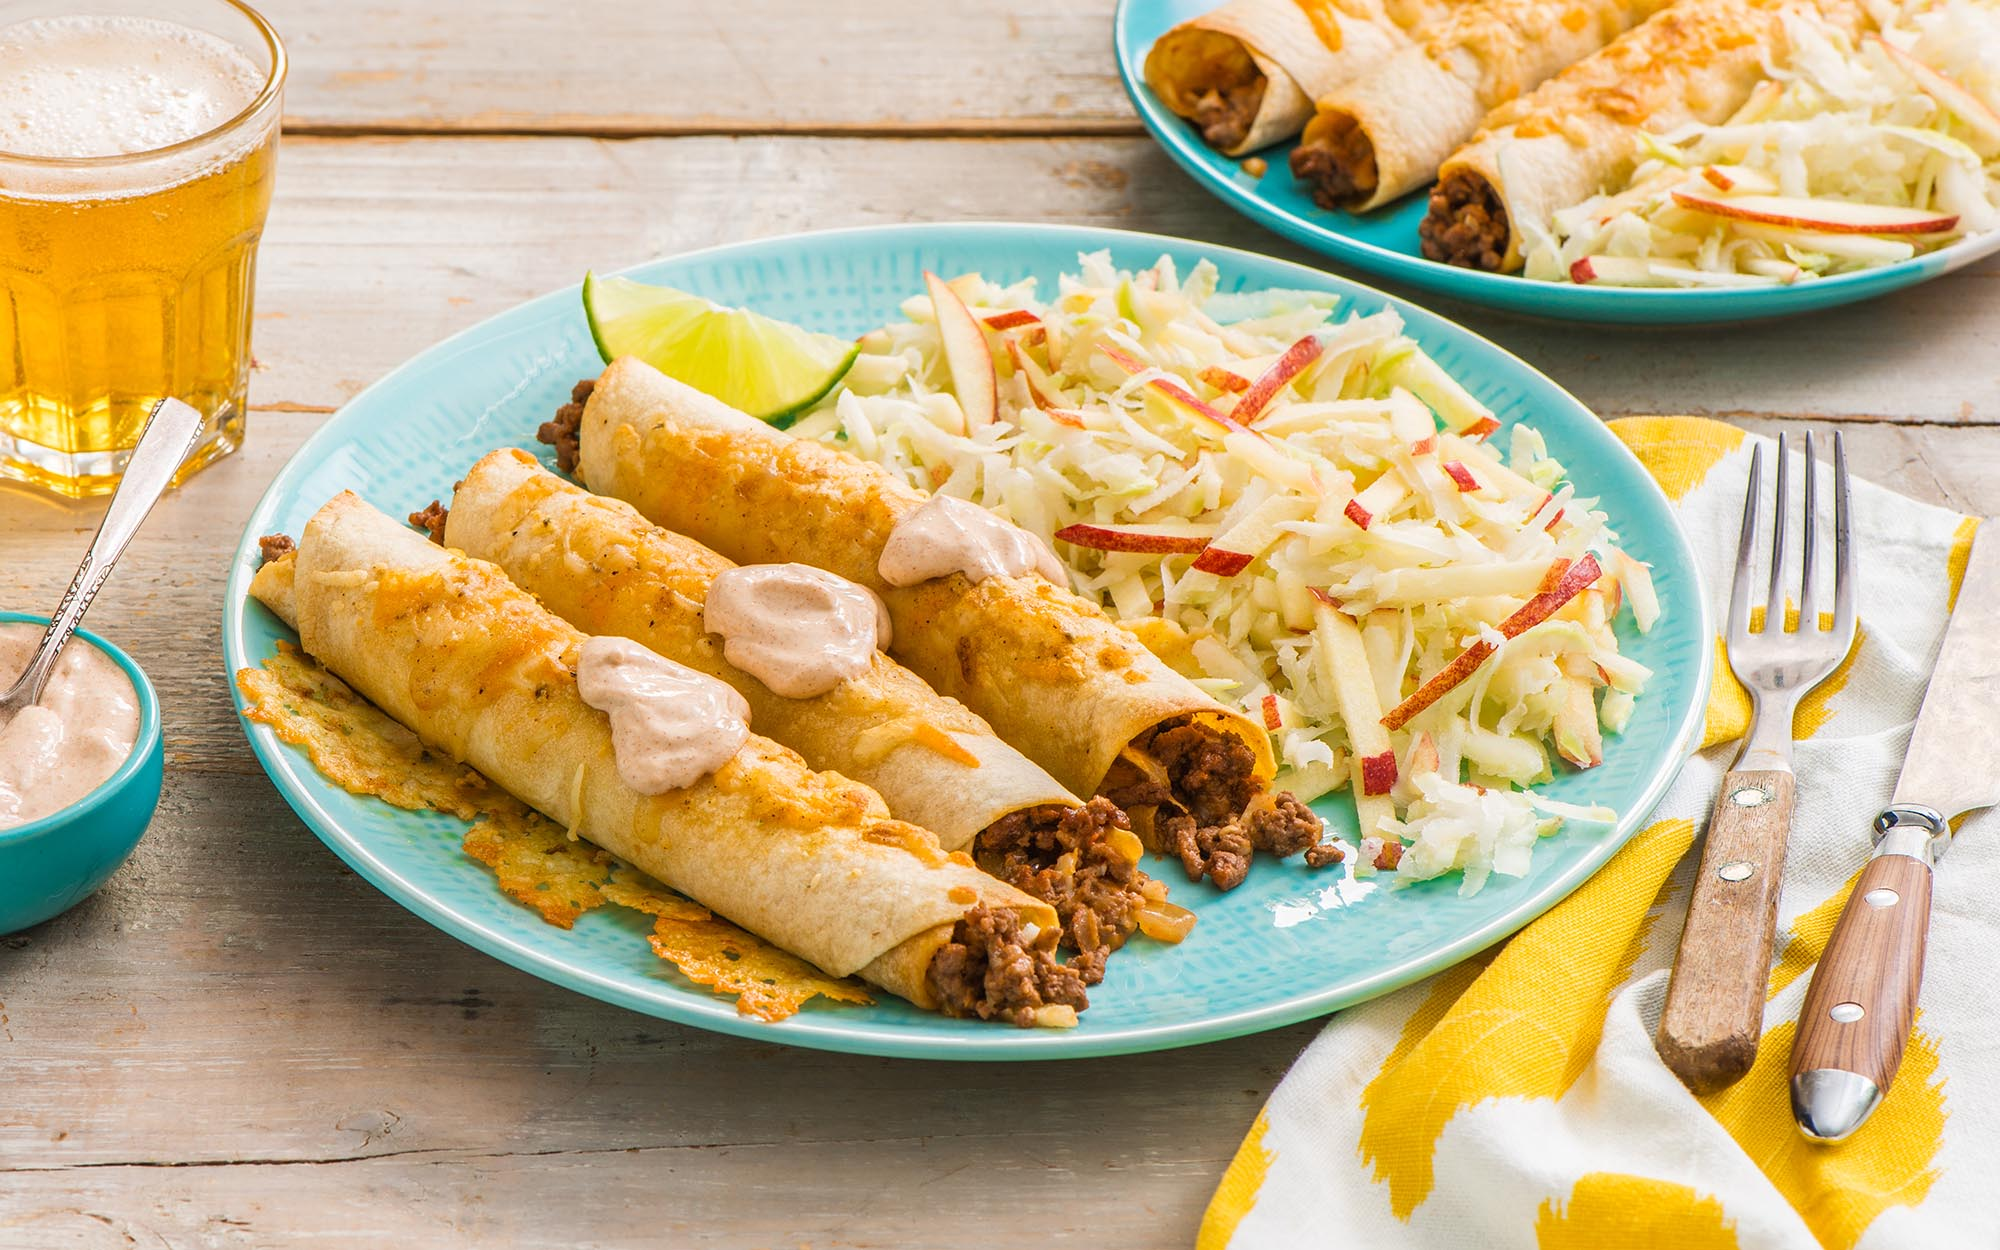 Spiced Beef and Cheese Taquitos